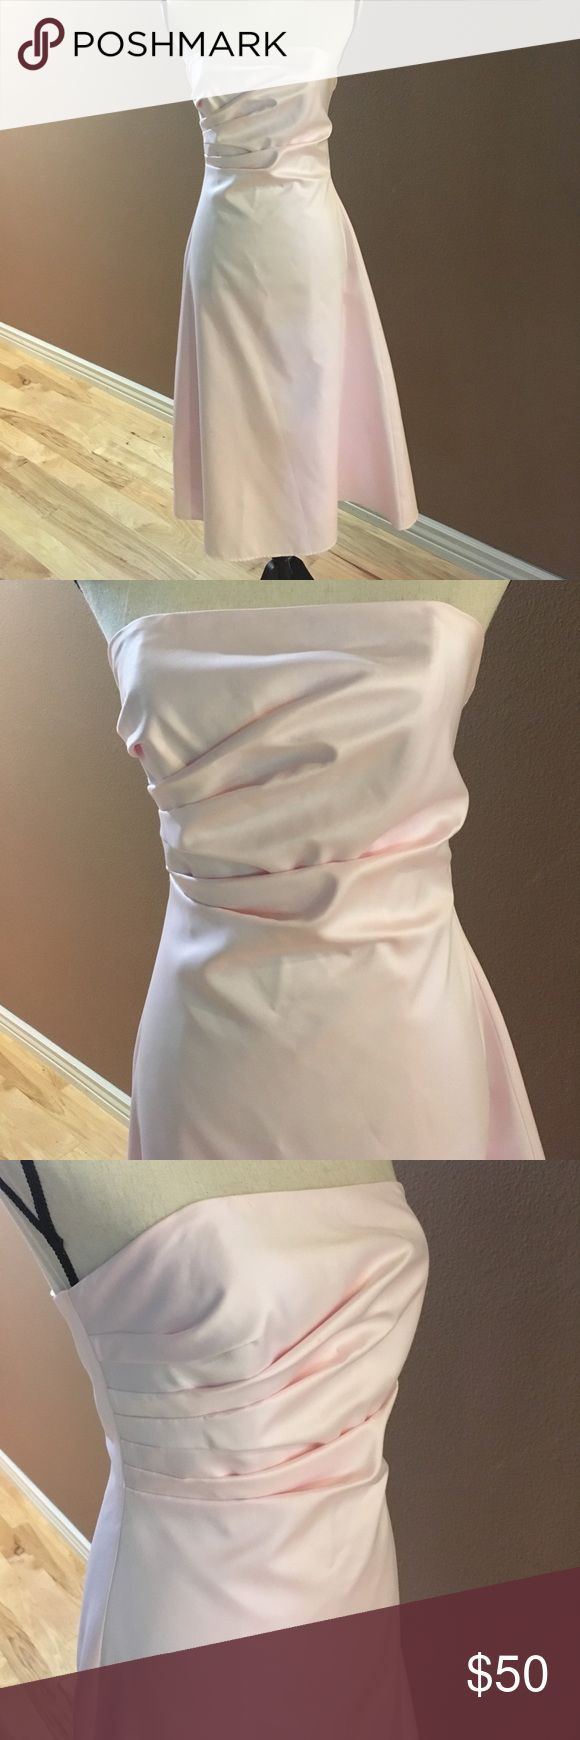 JS Boutique Baby Pink Formal Party Dress EUC Gorgeous formal dress perfect for special occasion : wedding, prom, homecoming, etc.   Stunning in baby pink. Worn one in a wedding. In like new condition. Classic look, beautiful draping at bodice. Very flattering. JS Boutique Dresses Wedding